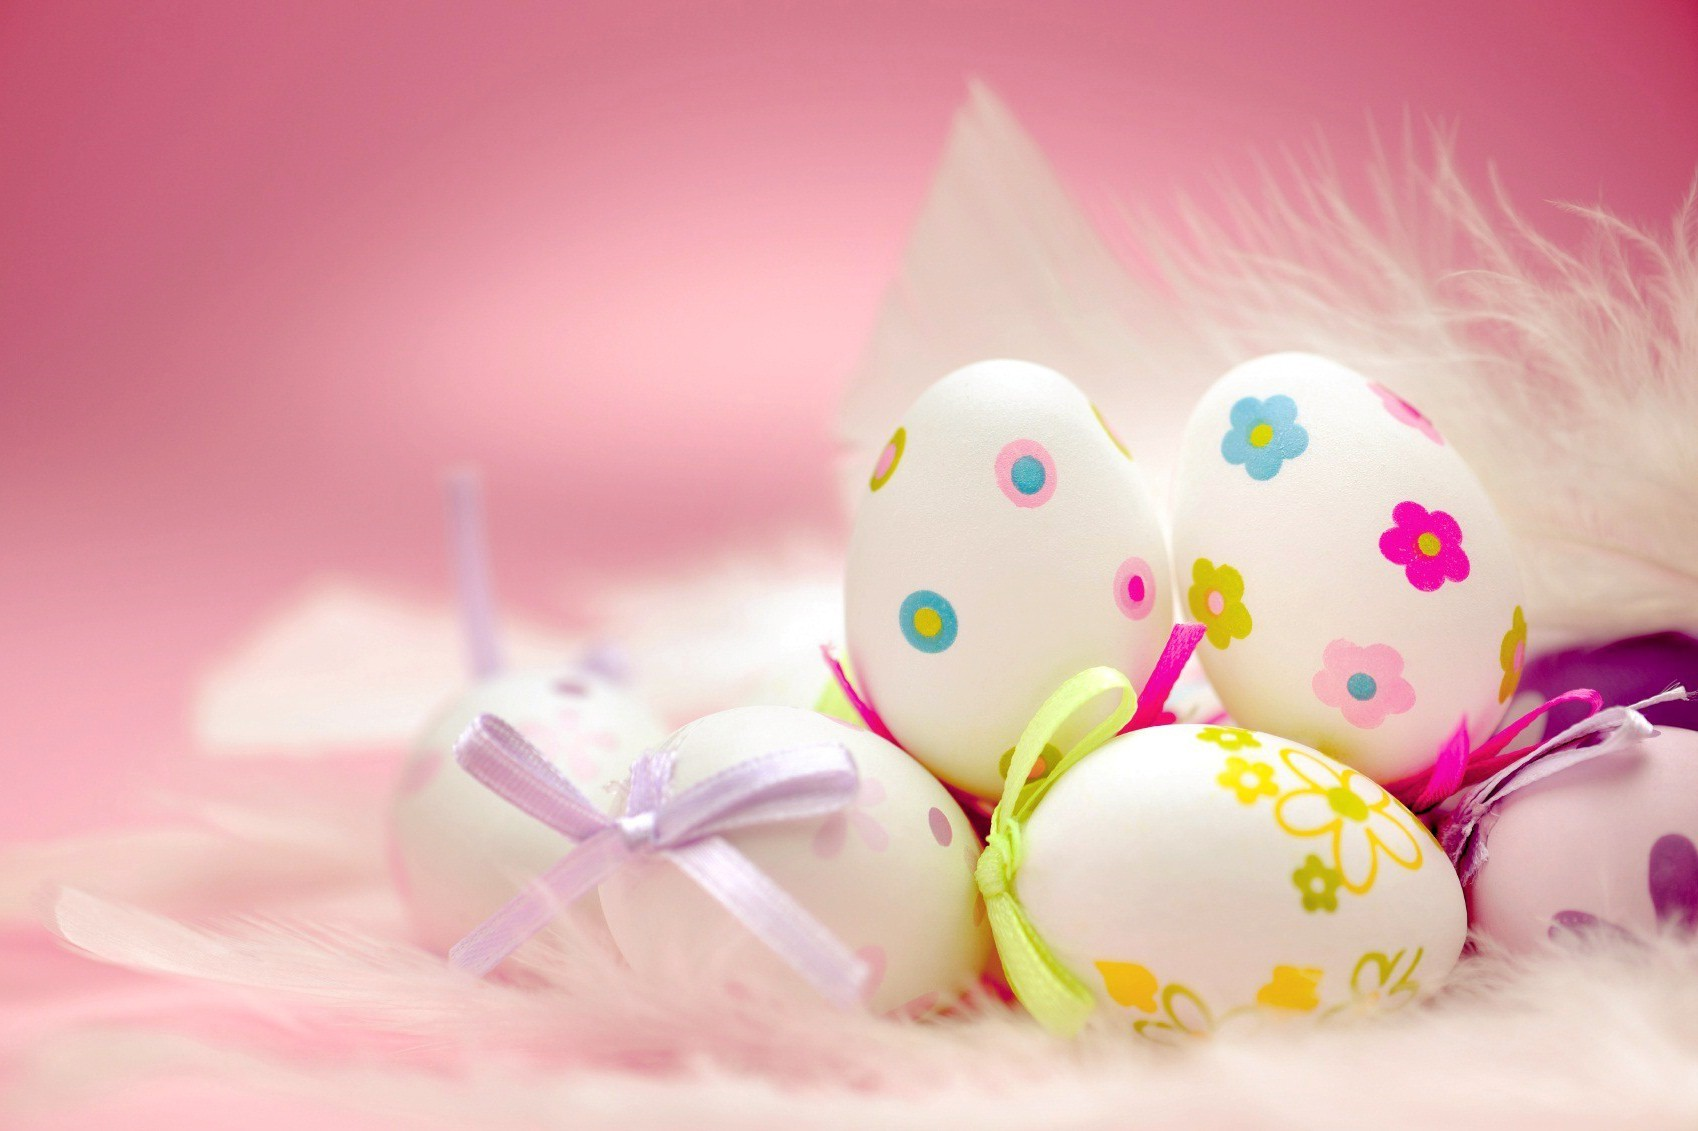 Colorful Easter Eggs 2018 Wallpapers   New HD Wallpapers 1698x1131